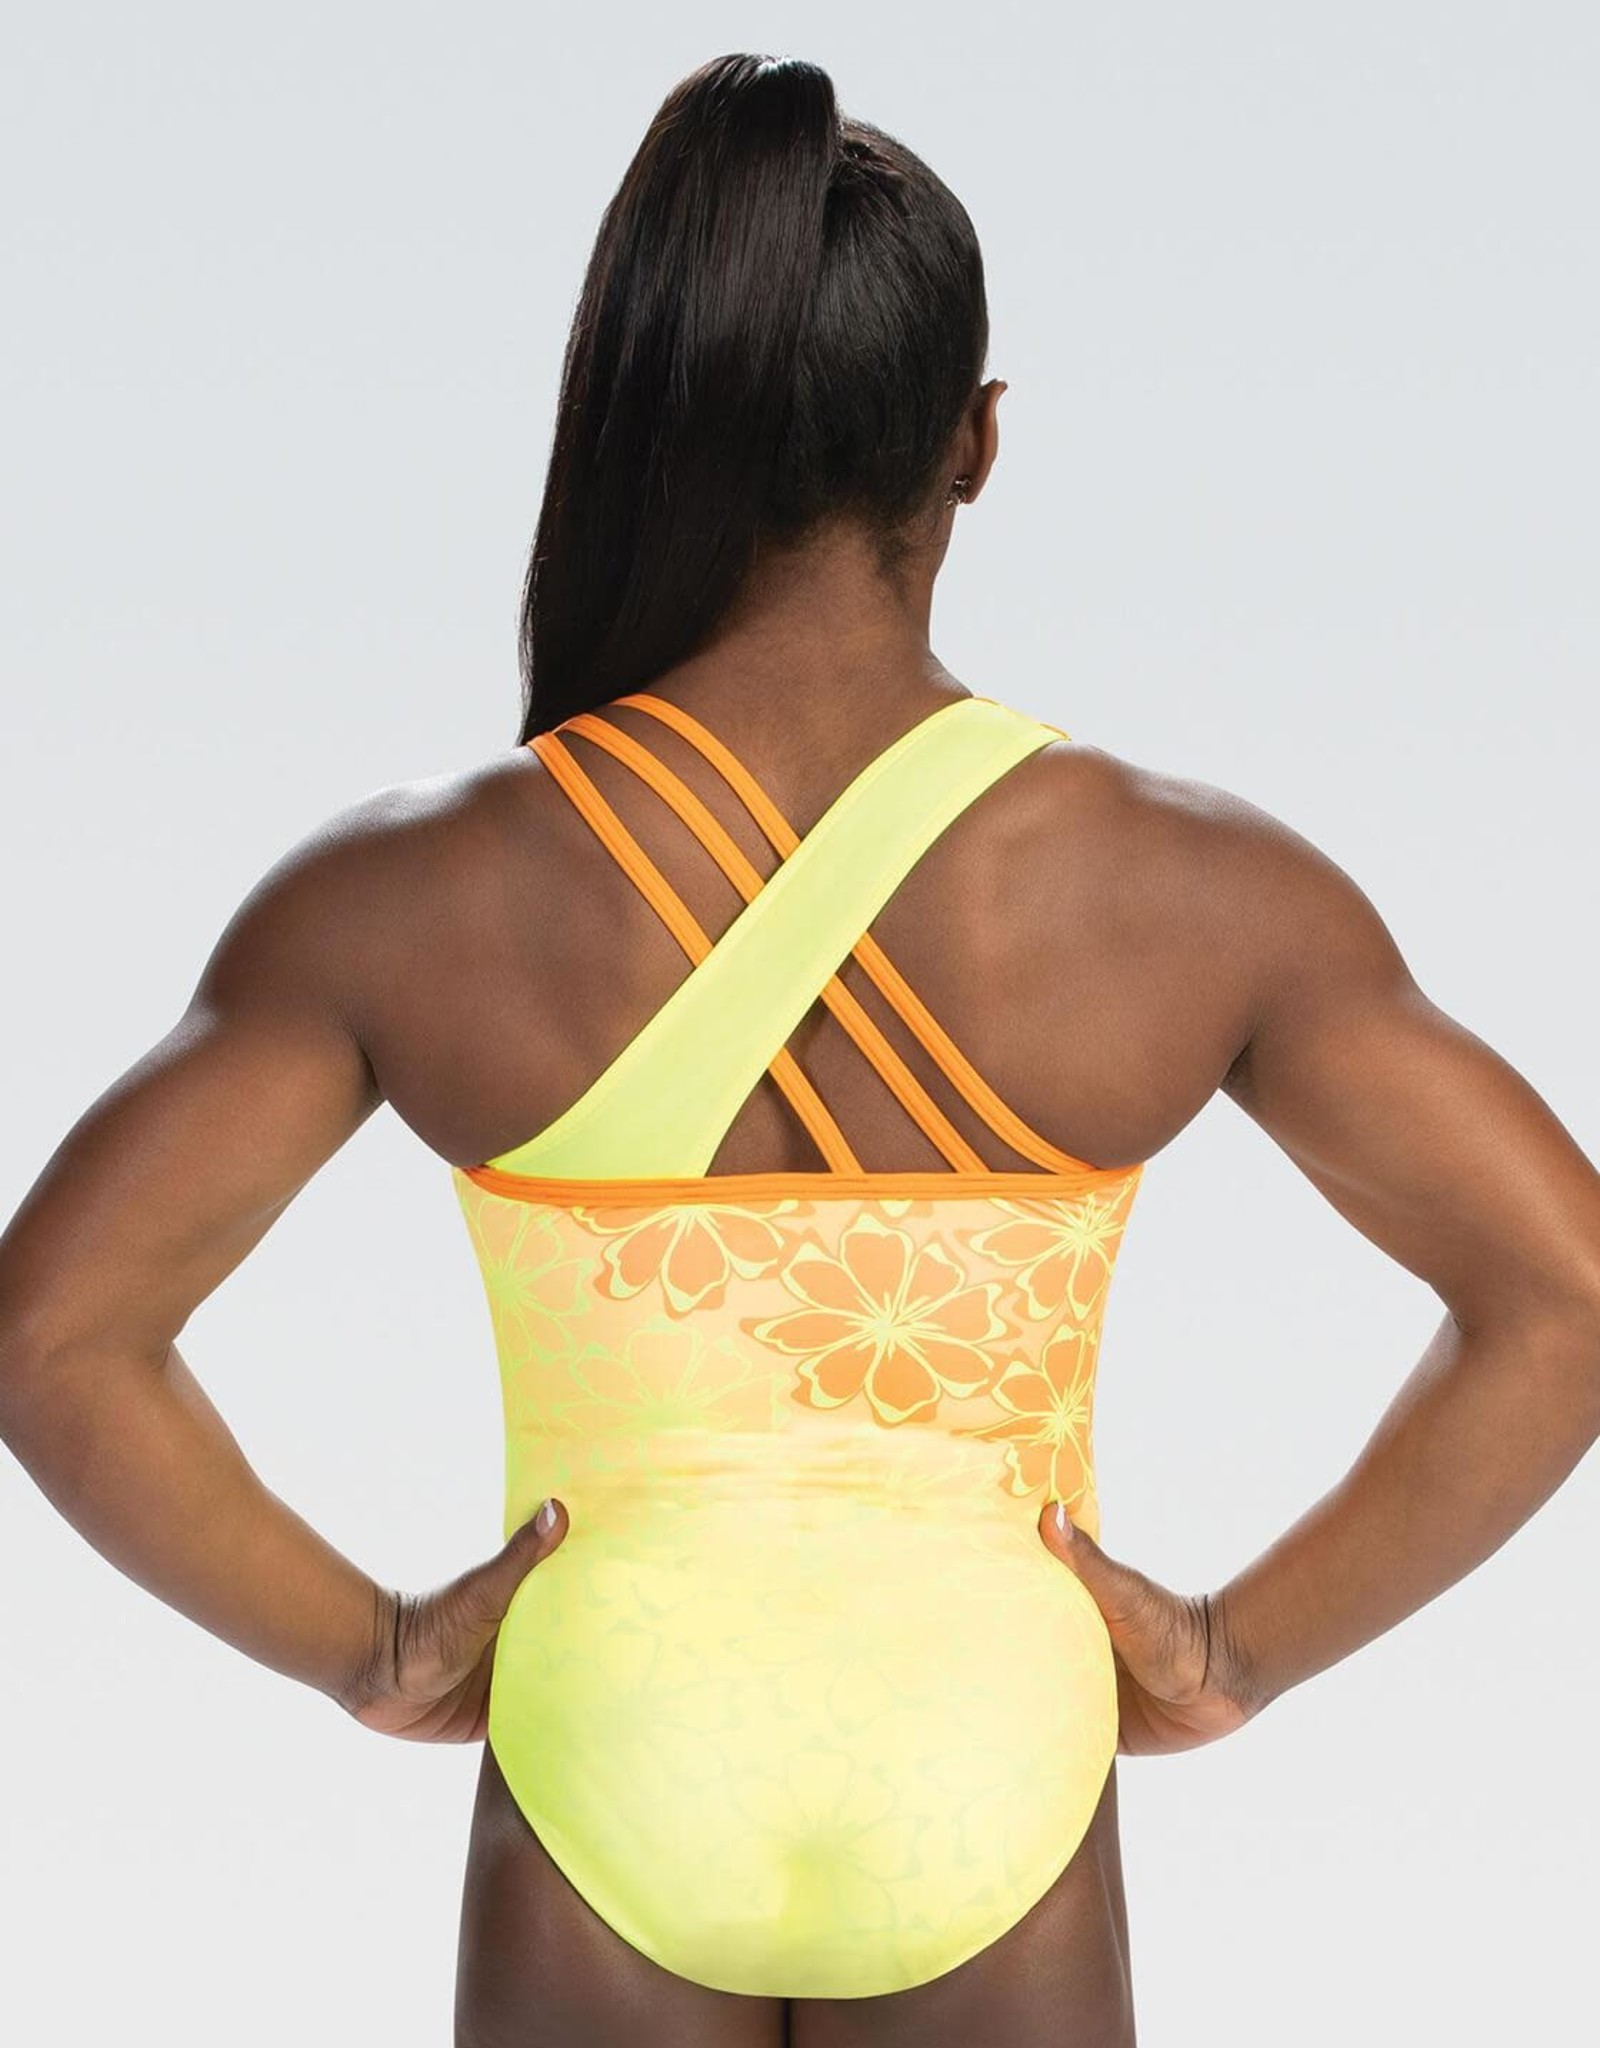 GK Elite  E4165- Simone Biles Sunshine Sensation Tank Leotard